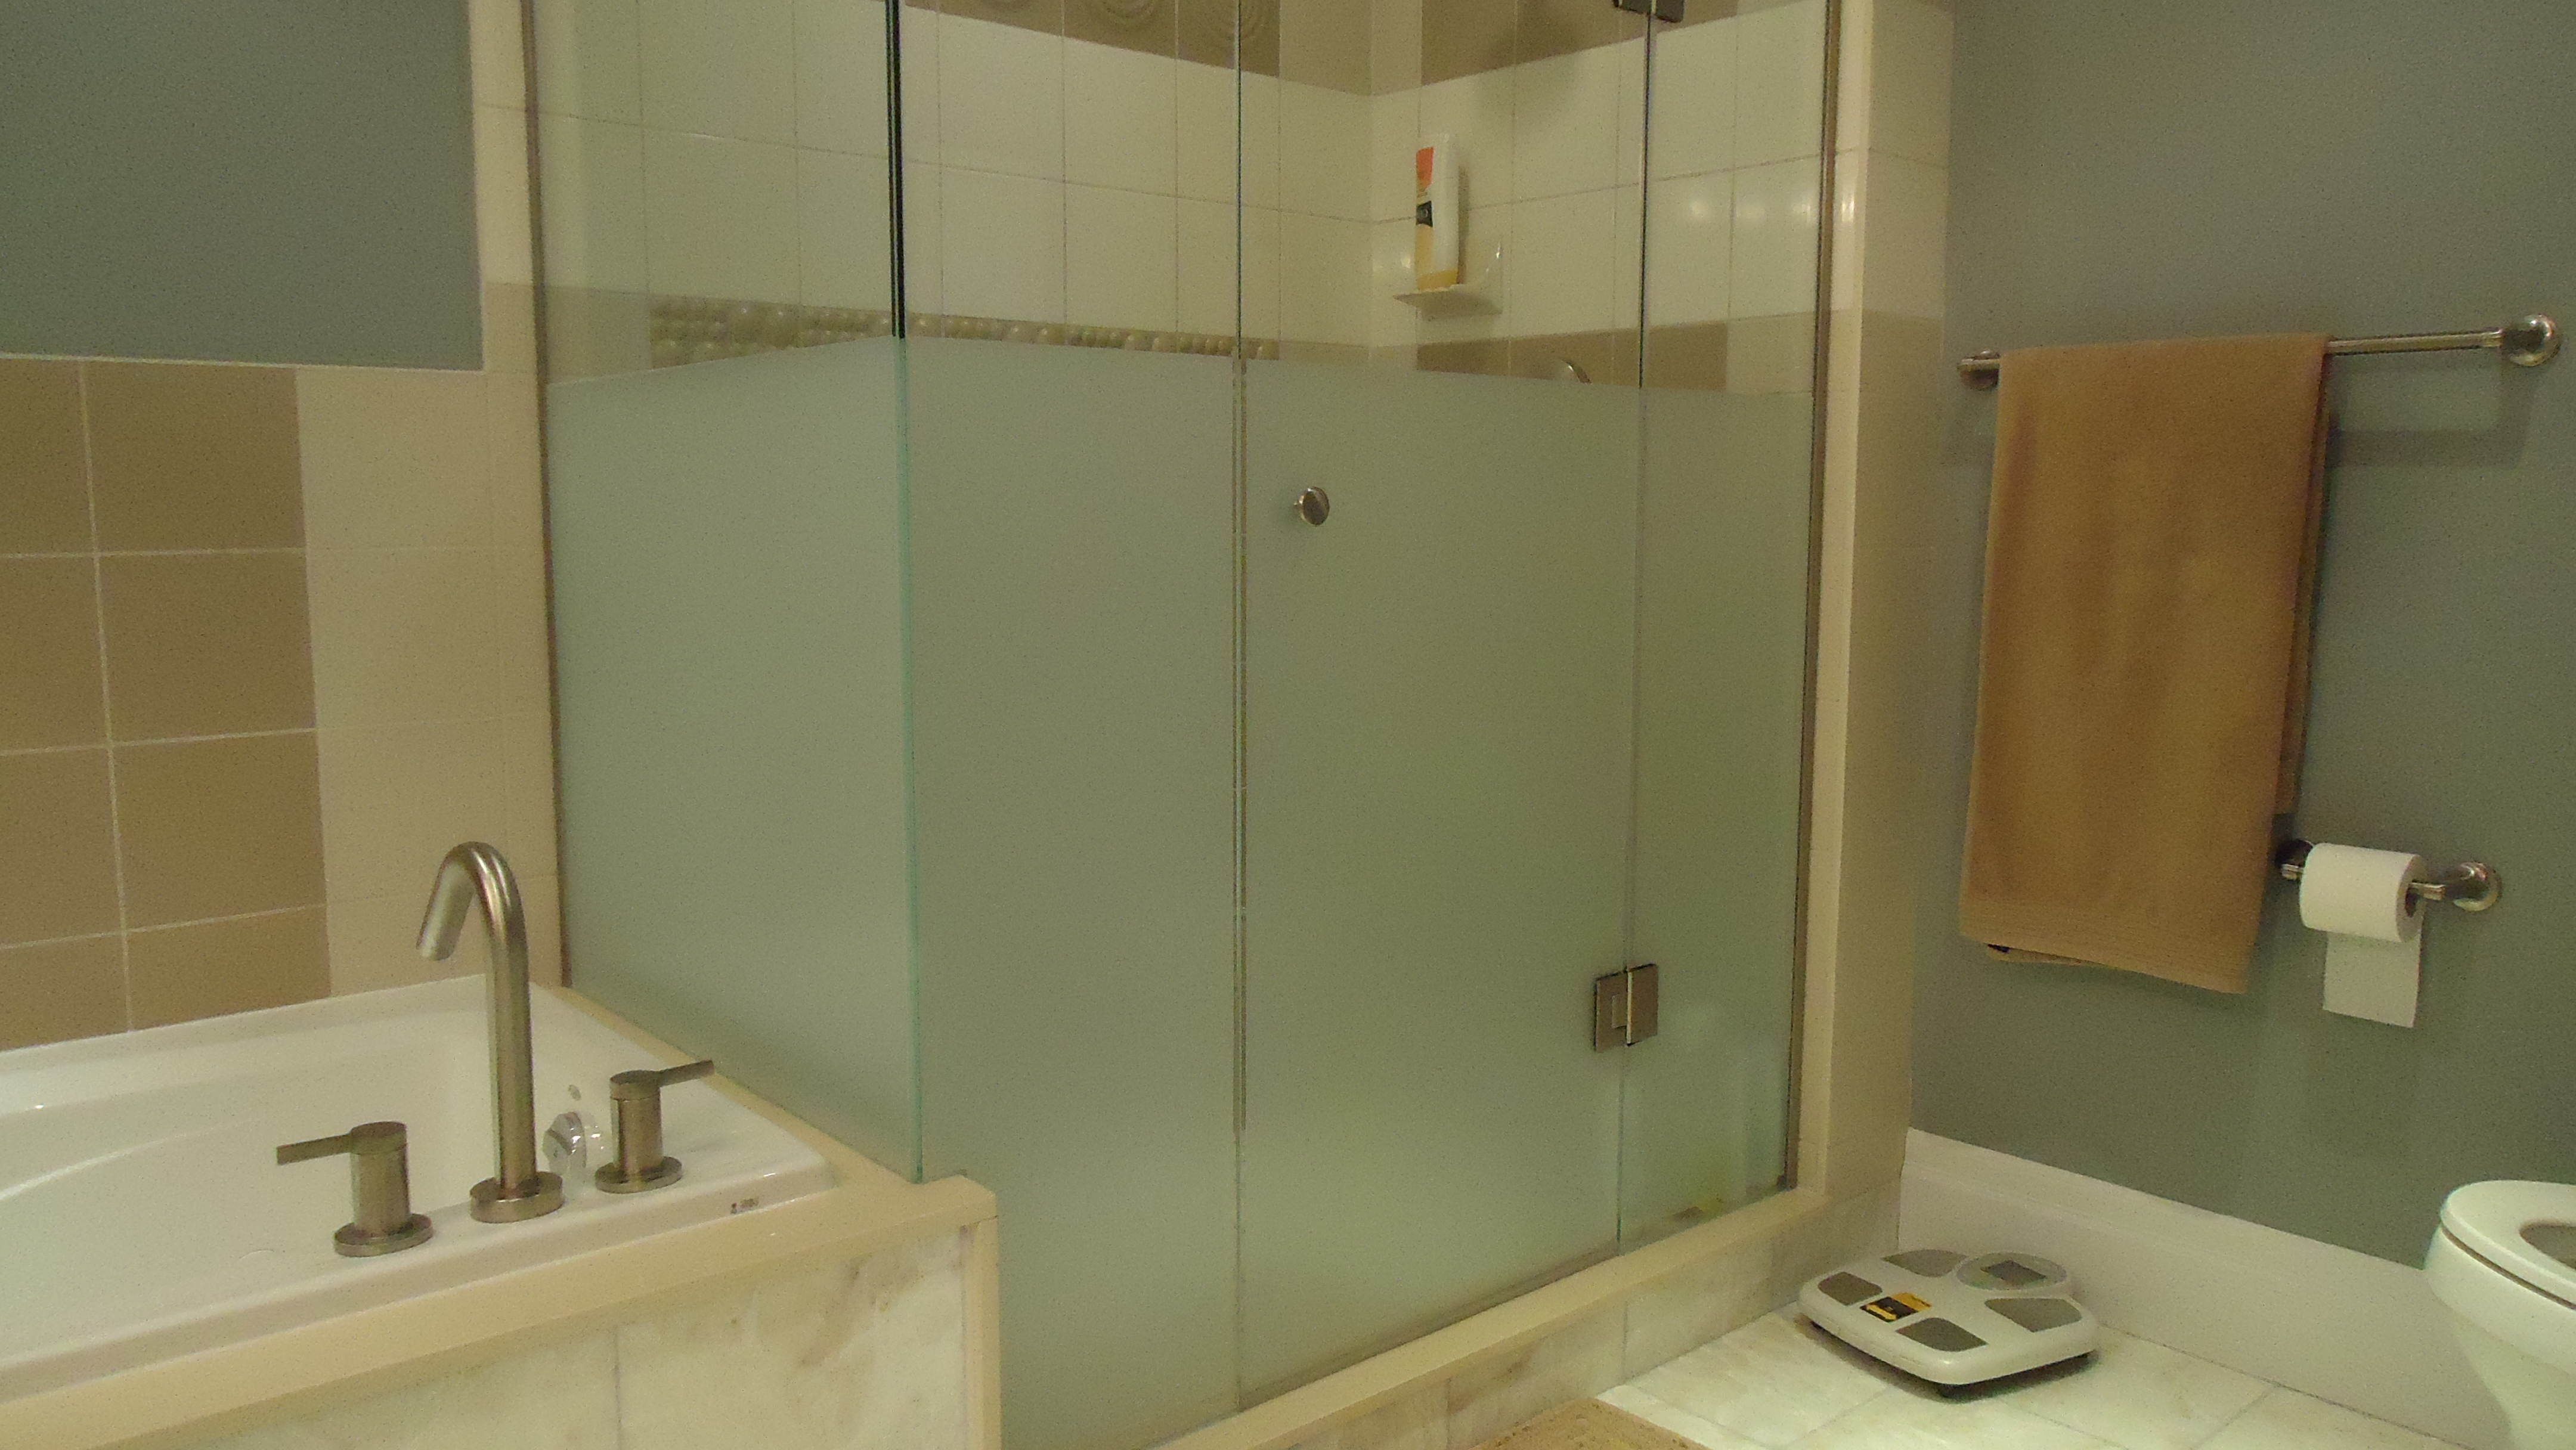 2432 #694F28 Recently I Added Window Films To A Glass Wall Shower Stall In A  picture/photo Privacy Glass Doors 44594320